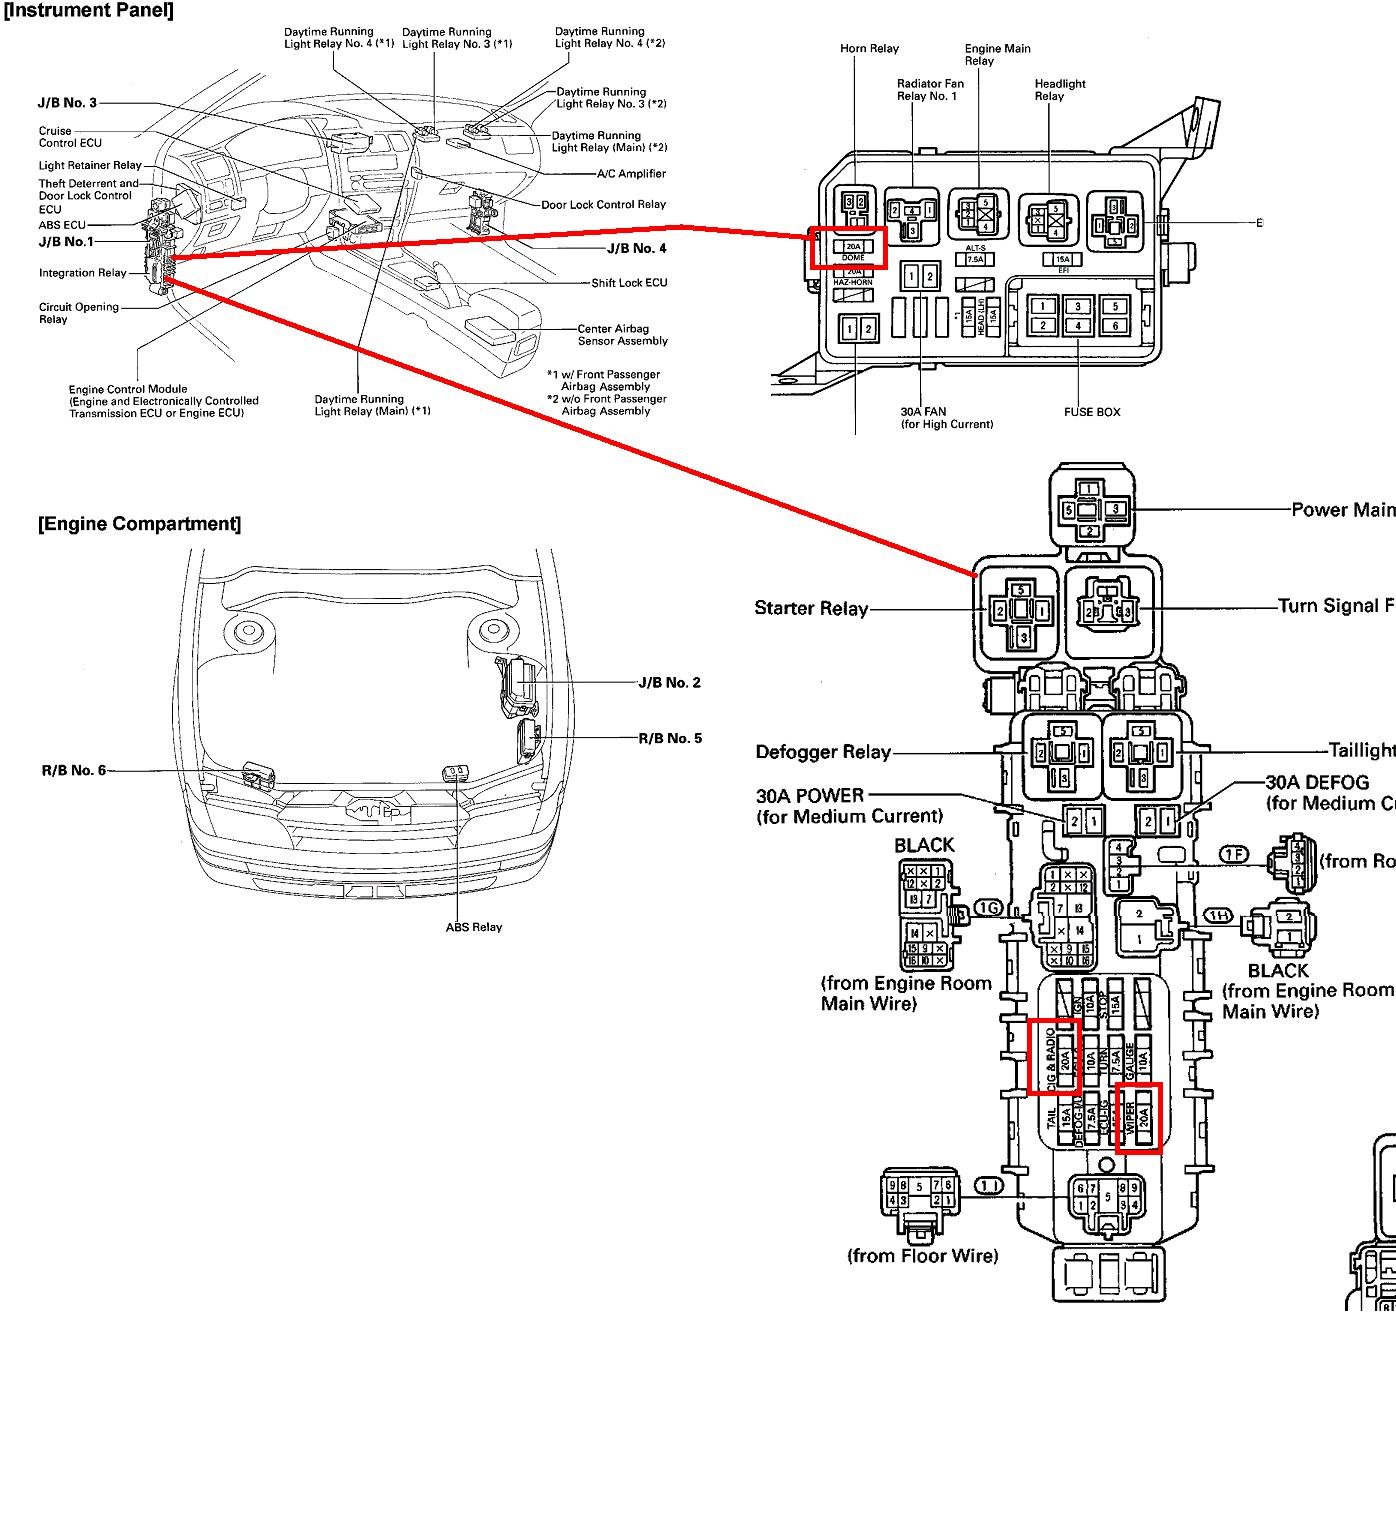 2006 corolla fuse box diagram wiring diagrams mon 2006 toyota corolla fuse box location 1992 corolla [ 1396 x 1535 Pixel ]